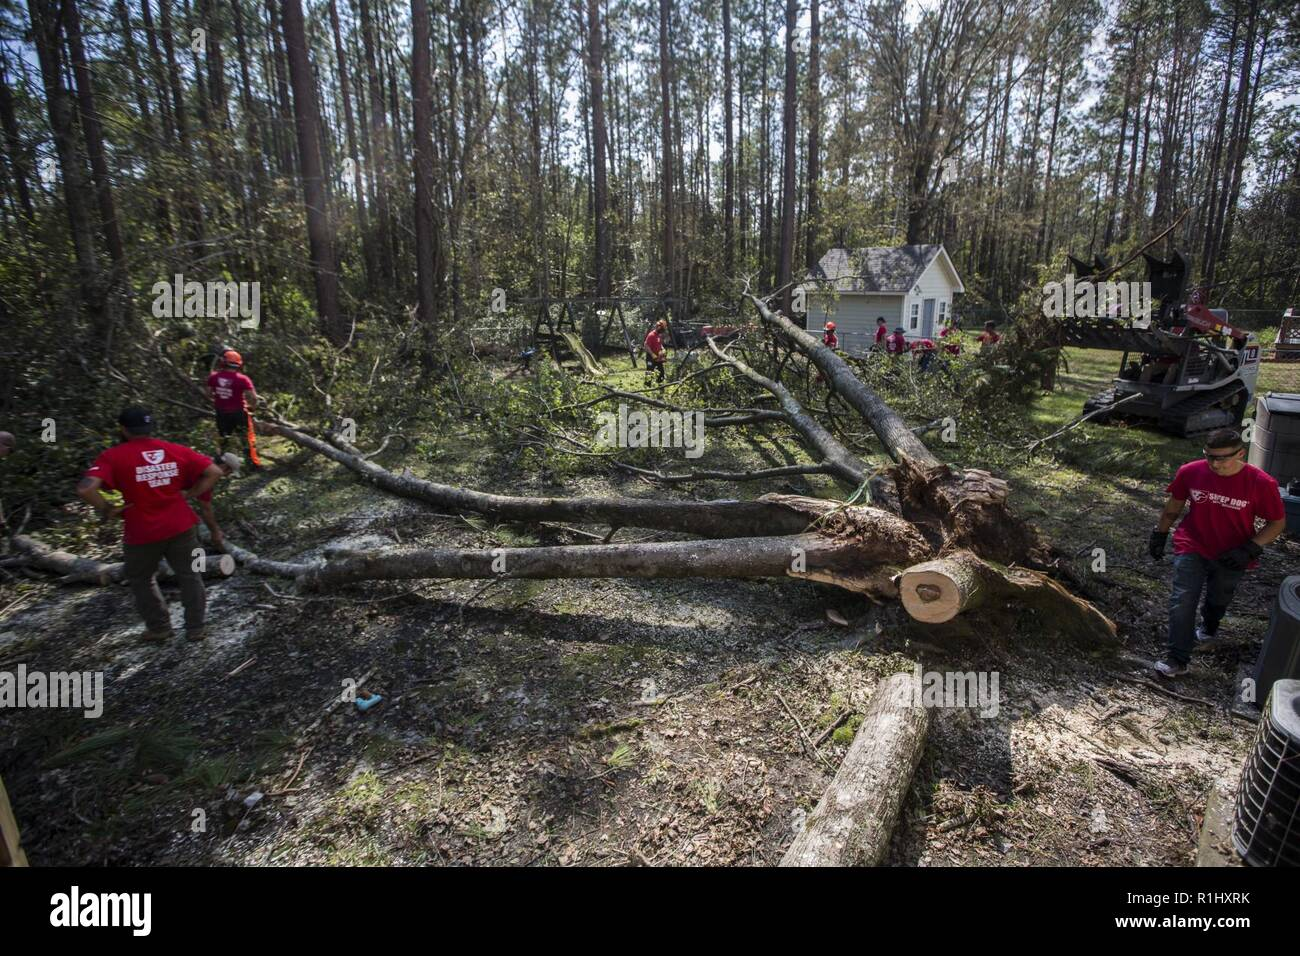 U.S. Marines of 2nd ANGLICO and Volunteers with Sheep Dog Impact Assistance organization remove branches and remains a fallen tree from an area impacted by Hurricane Florence in Wilmington, N.C. Sept 22, 2018. Sheep Dog is a non-profit organization of veterans and first responders aiding the community in disaster relief efforts through road clearings, home repairs and personnel evacuations. Hurricane Florence, with its heavy rain and strong winds, is the biggest storm to impact the Carolinas since Hurricane Floyd in 1999. - Stock Image